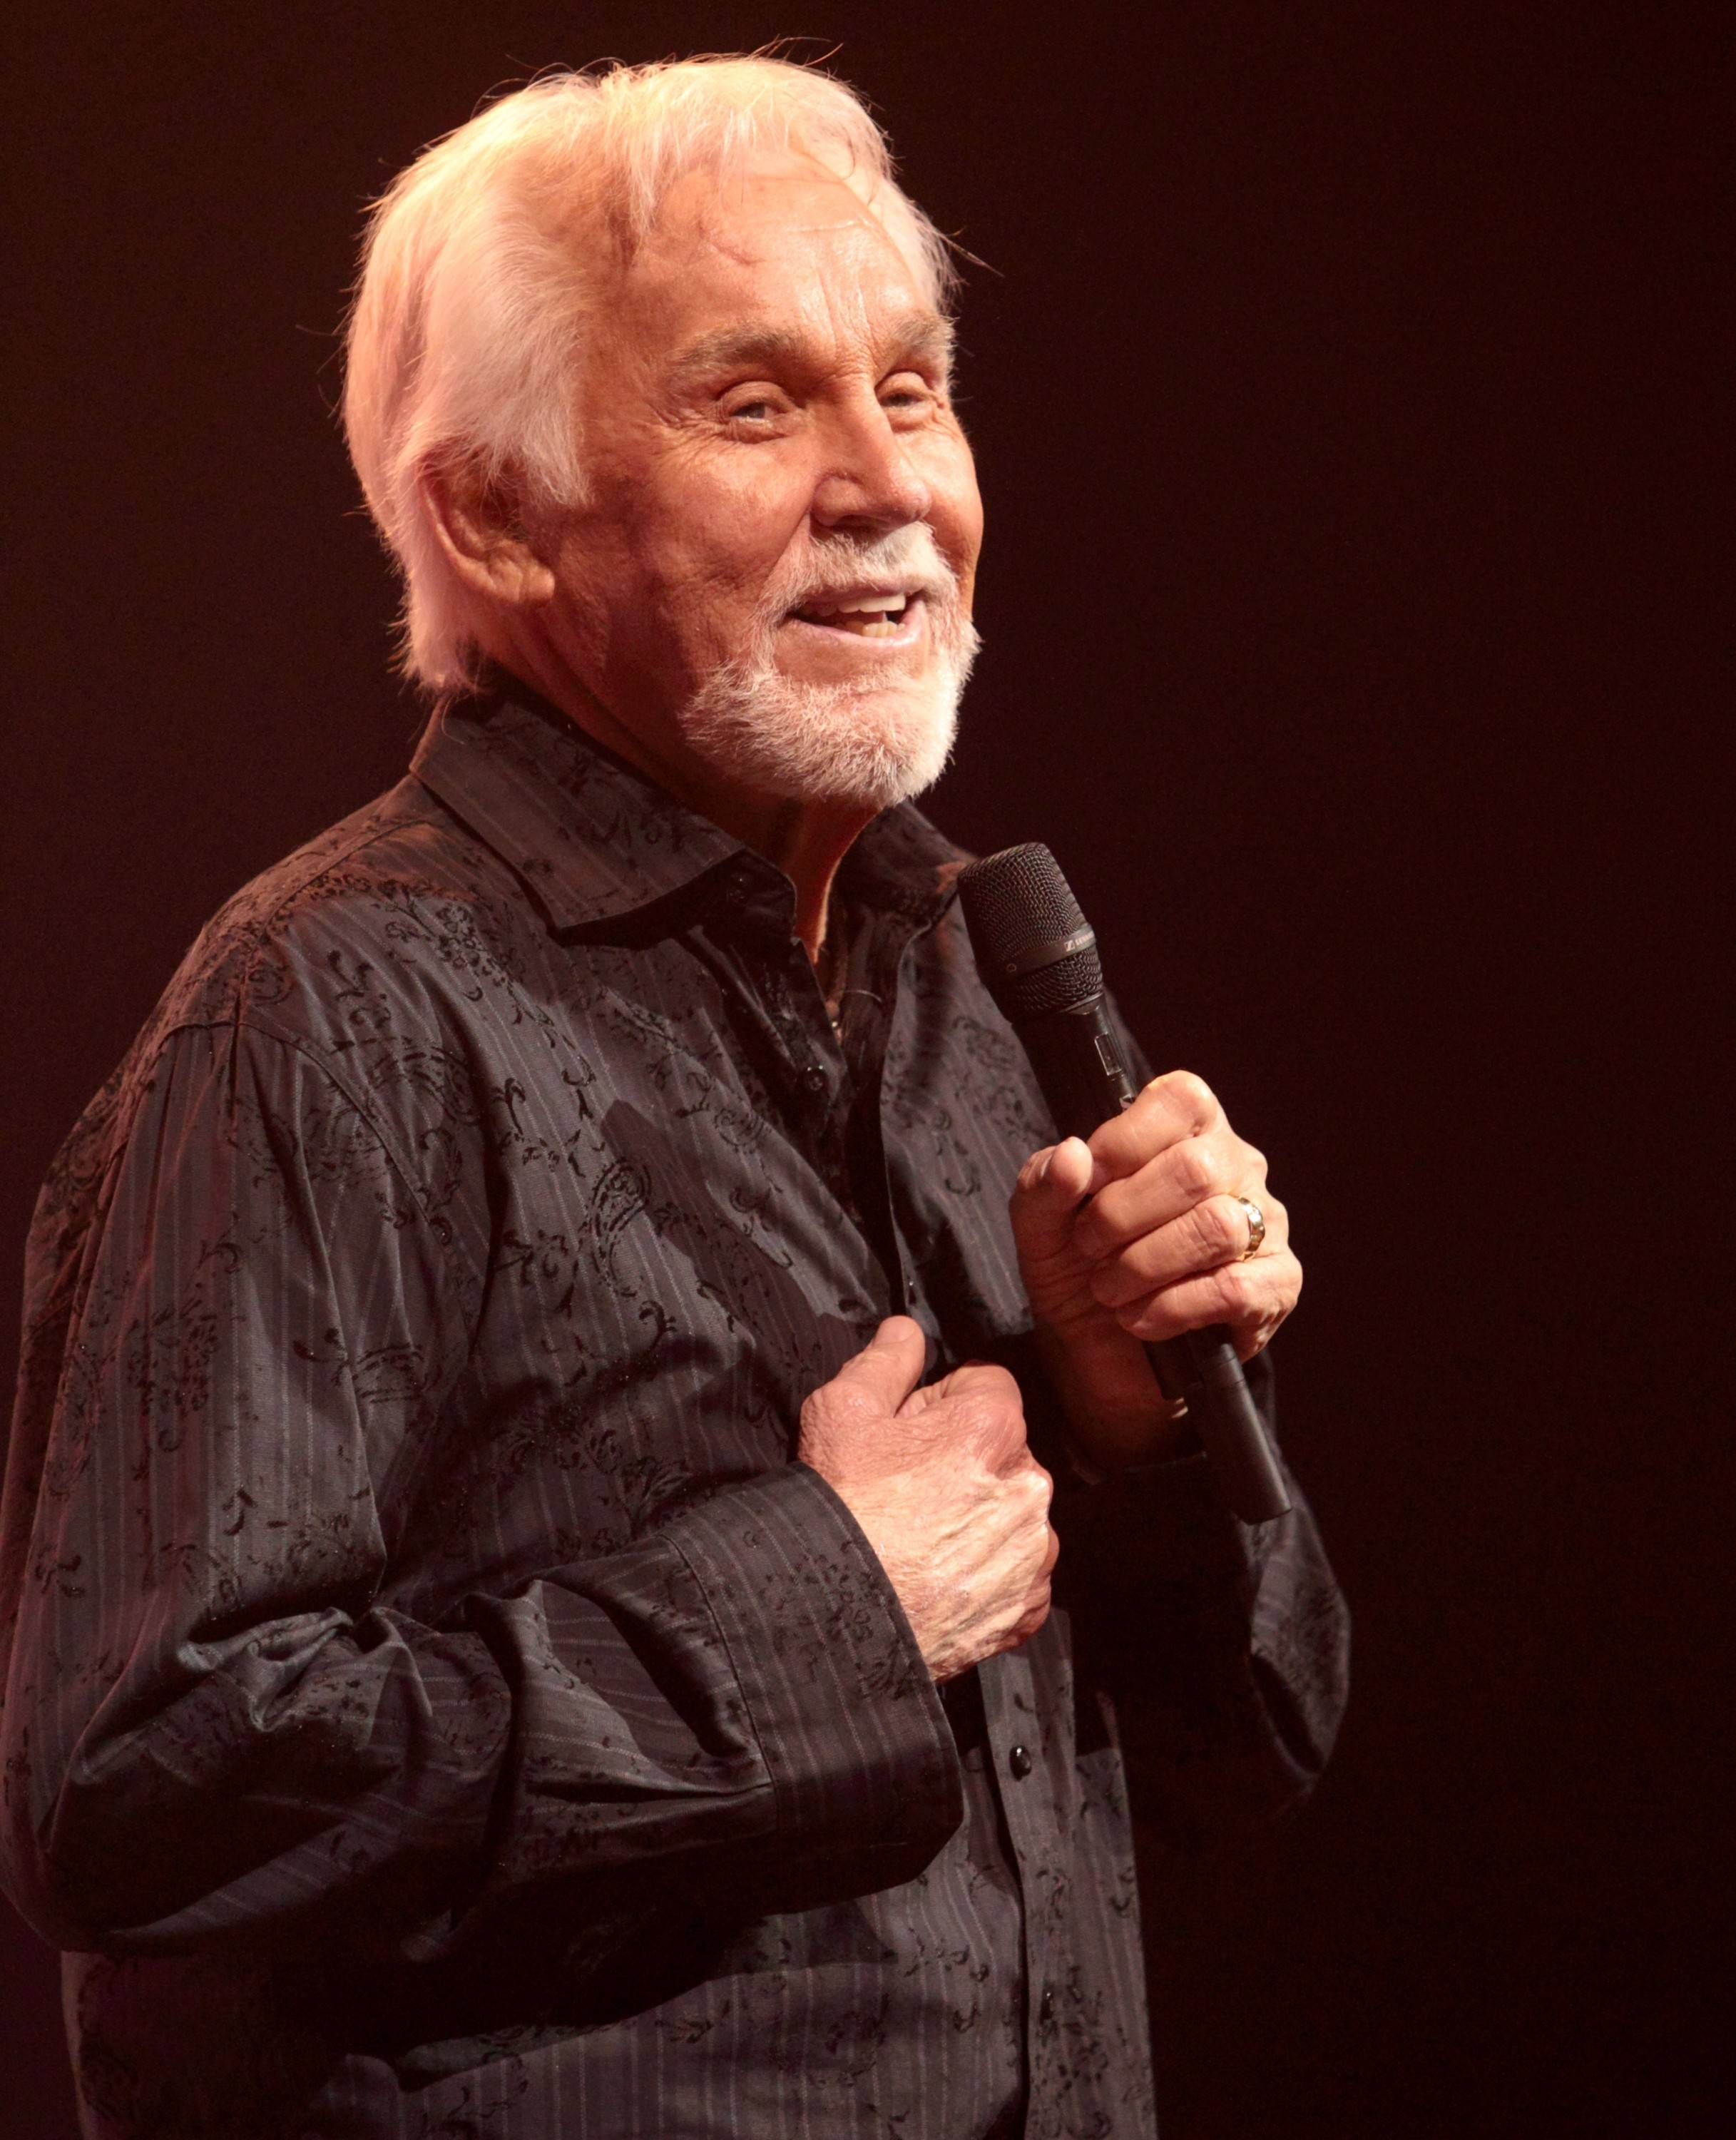 Kenny Rogers performs at Lions Park in Elk Grove Village on July 4, kicking off the village's annual Mid-Summer Classics Concert Series.